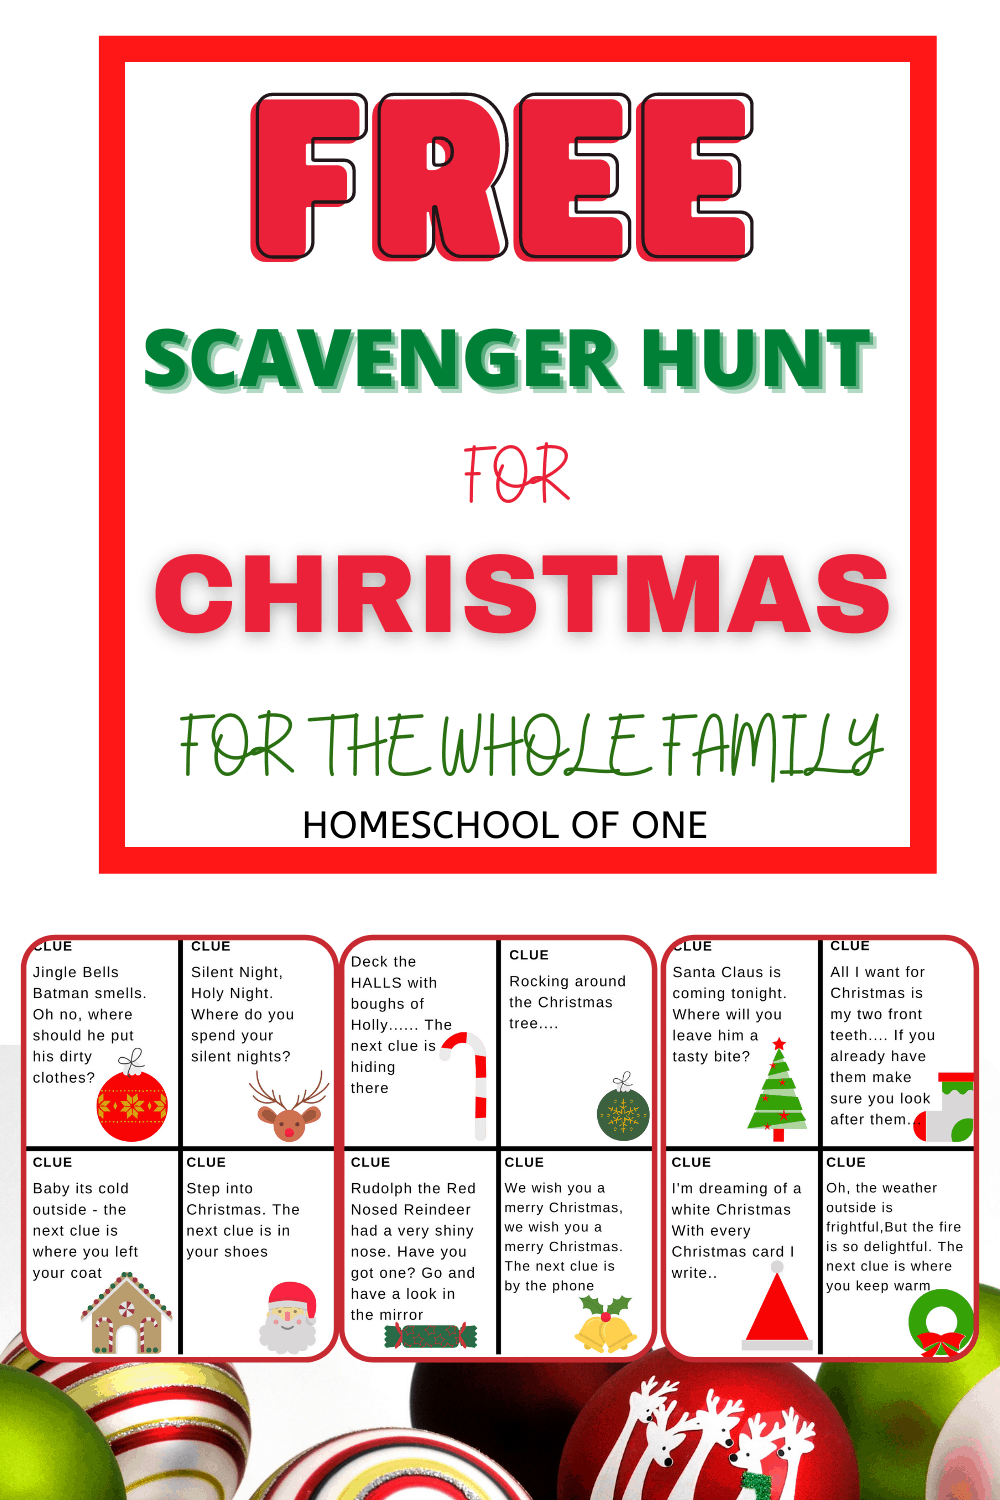 Free scavenger hunt for Christmas for the whole family. Free download